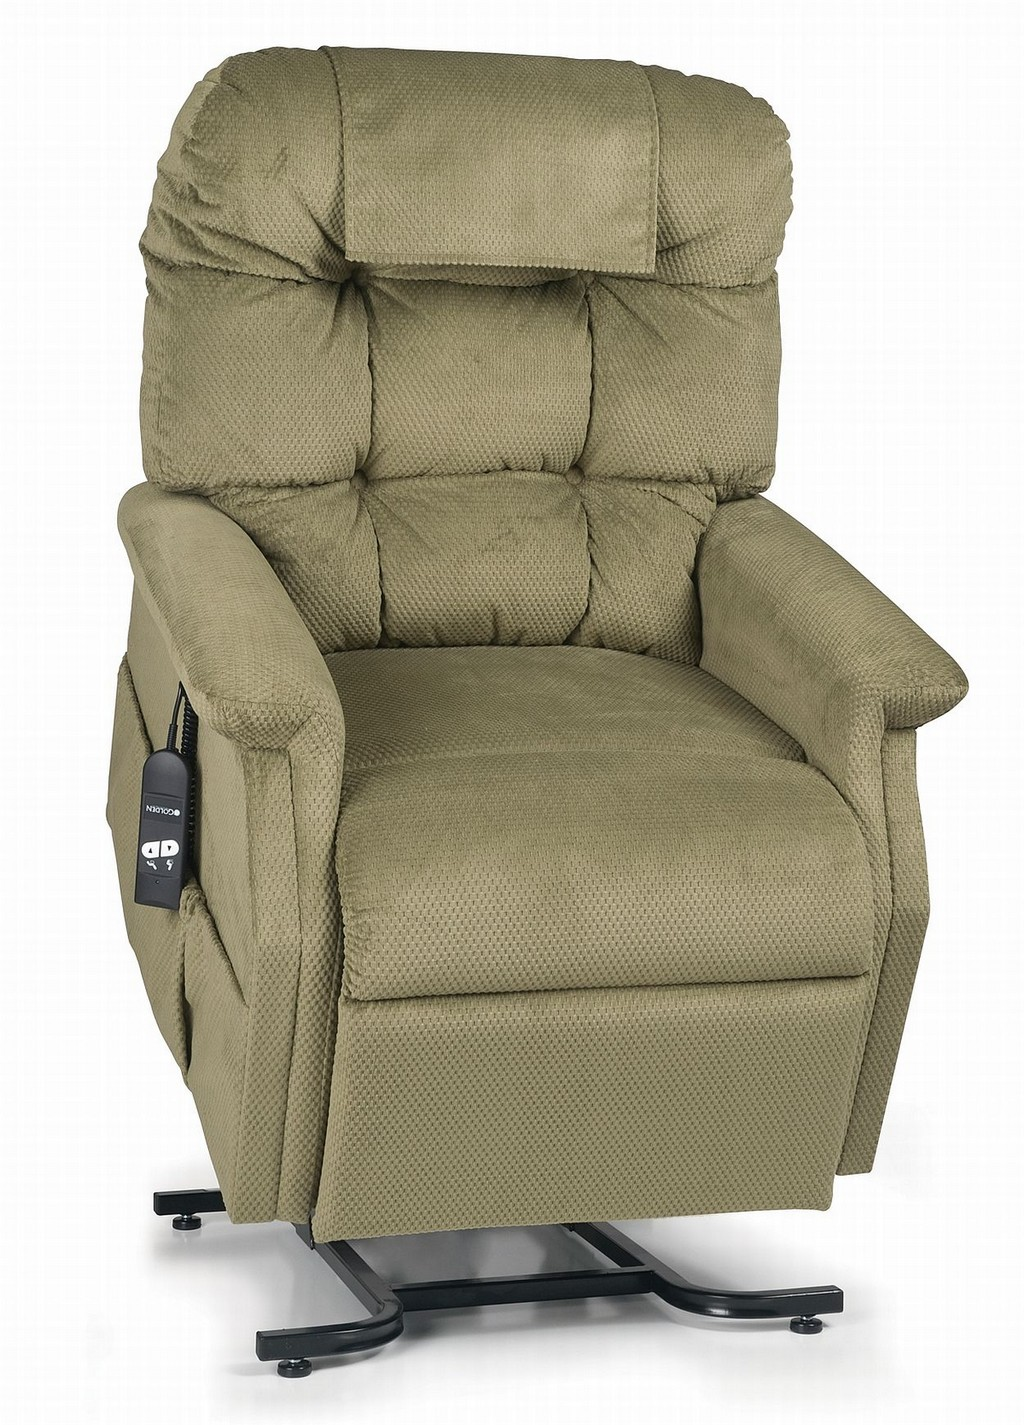 pride lift chairs price, lazy boy lift chairs, recliner lift chair, electric lift chair